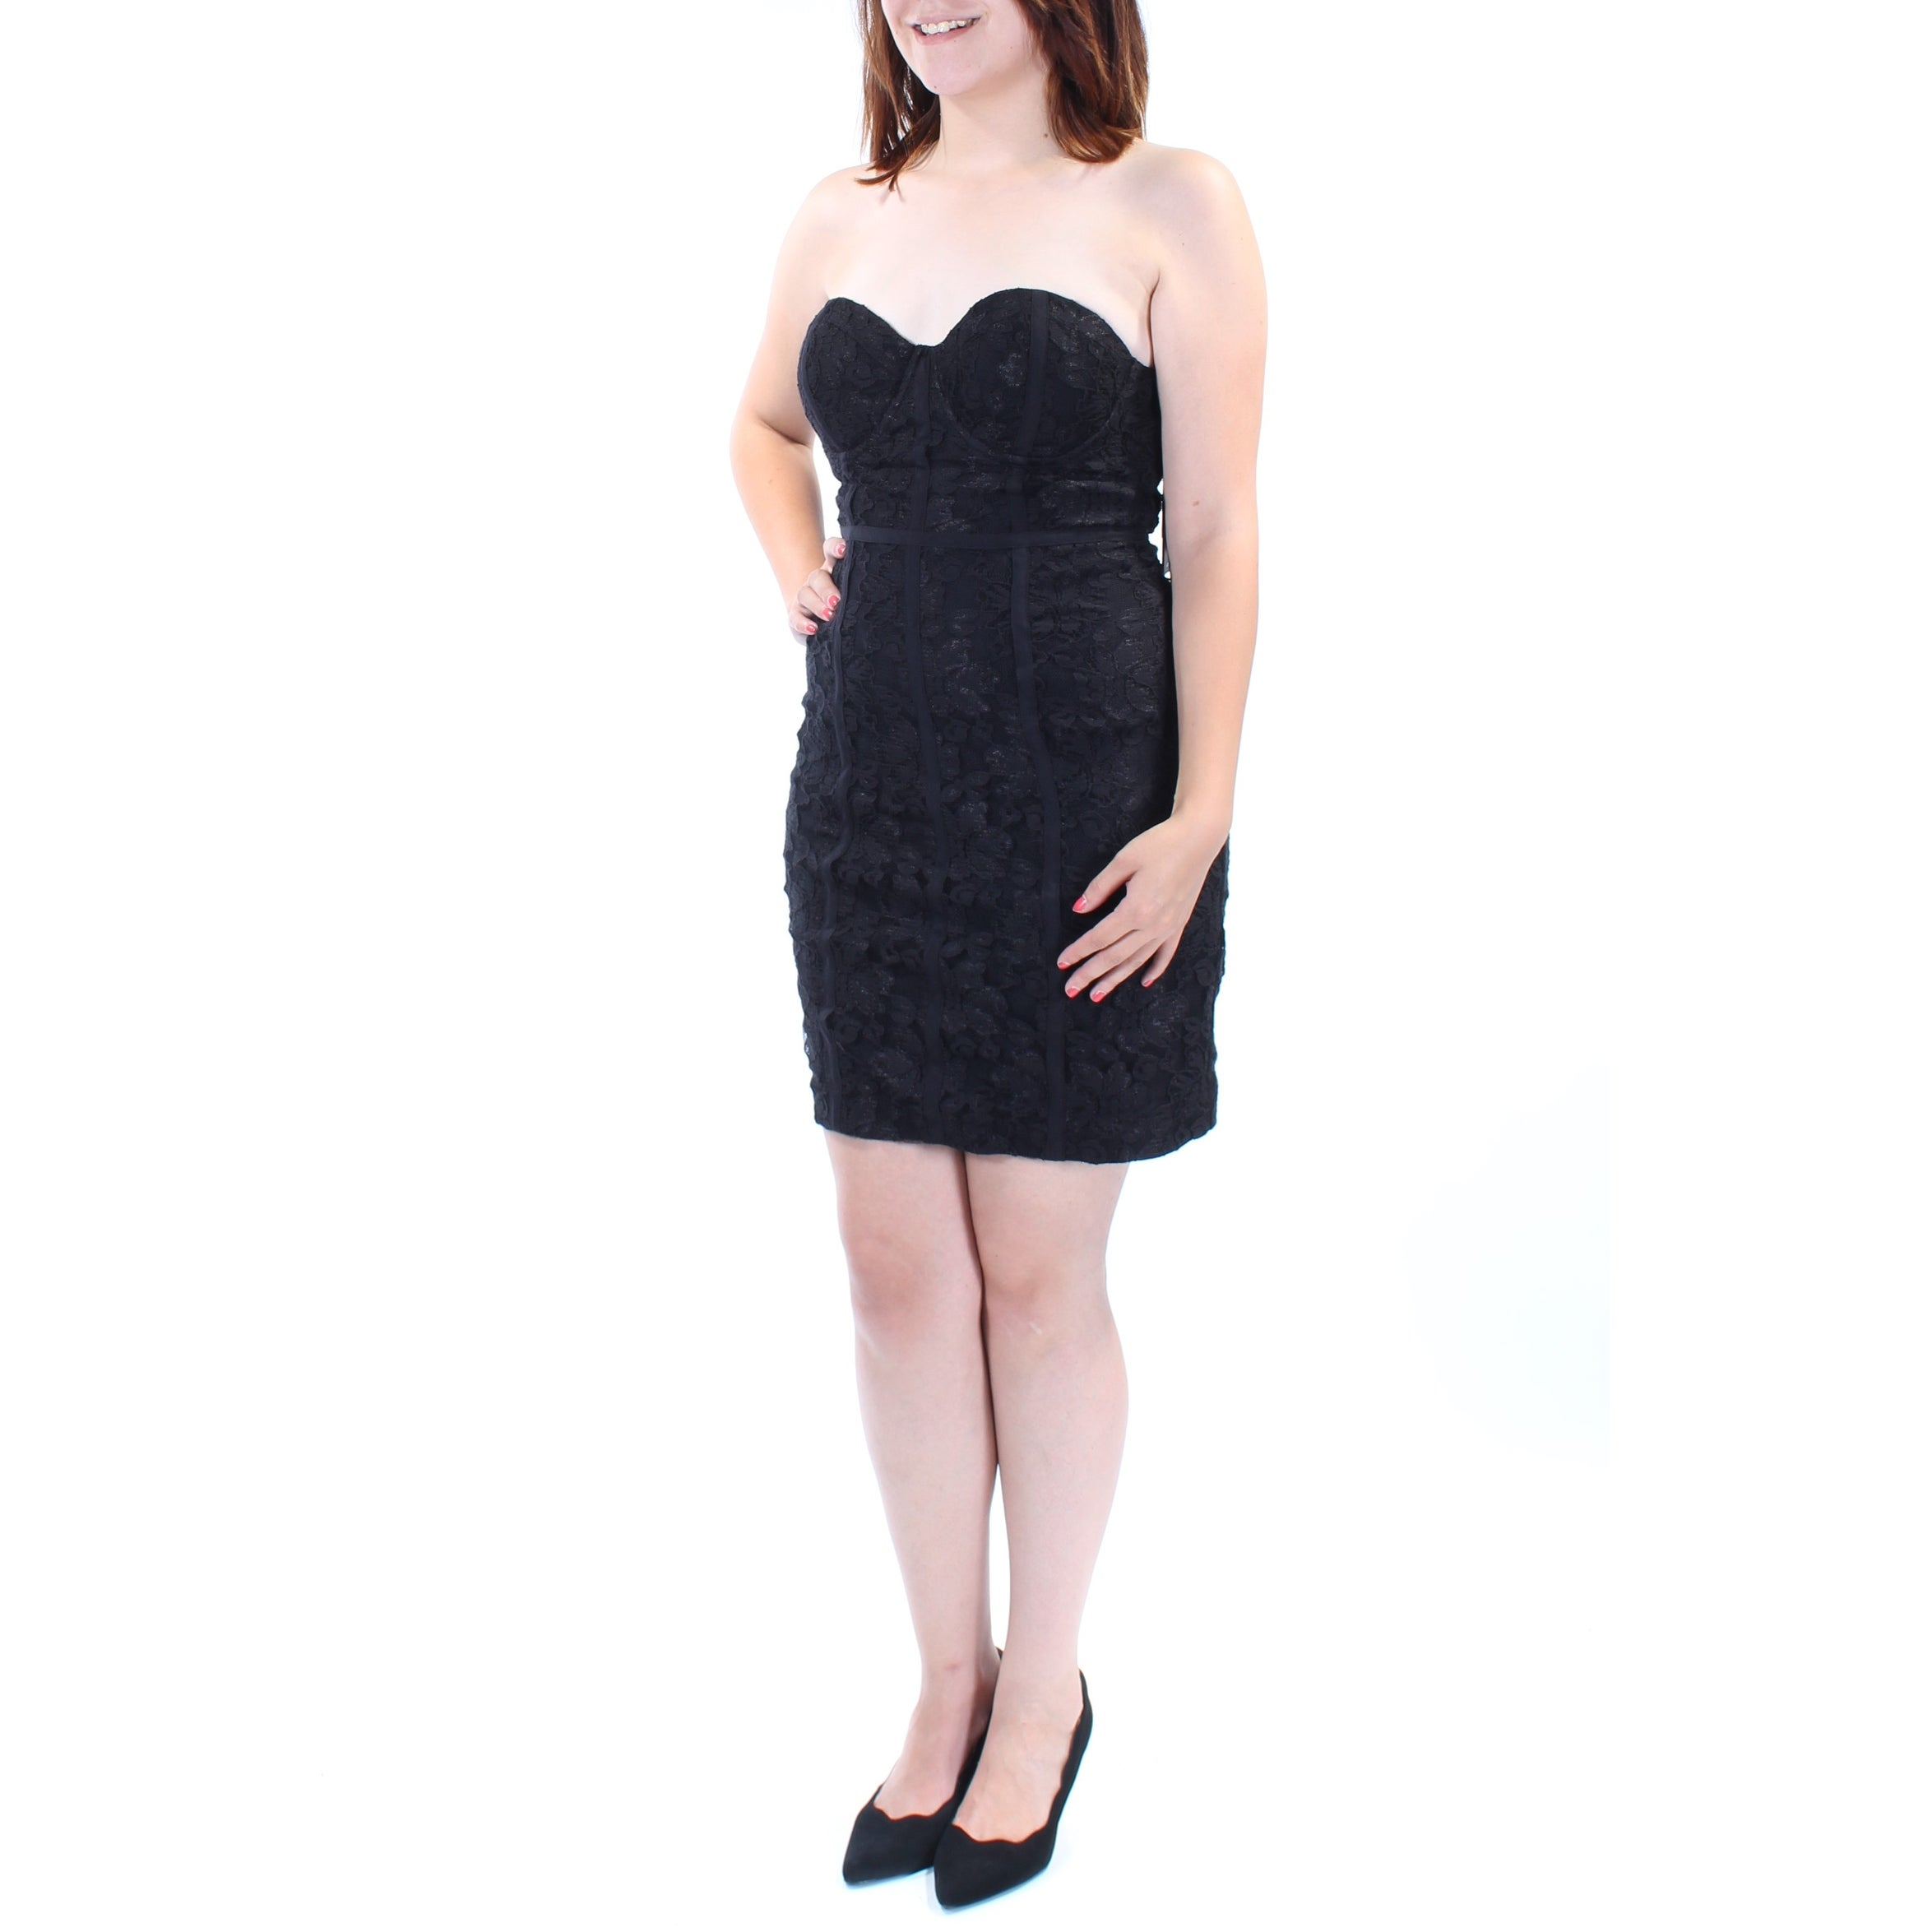 171b1e0ecb1 Dry Clean Guess Dresses | Find Great Women's Clothing Deals Shopping at  Overstock